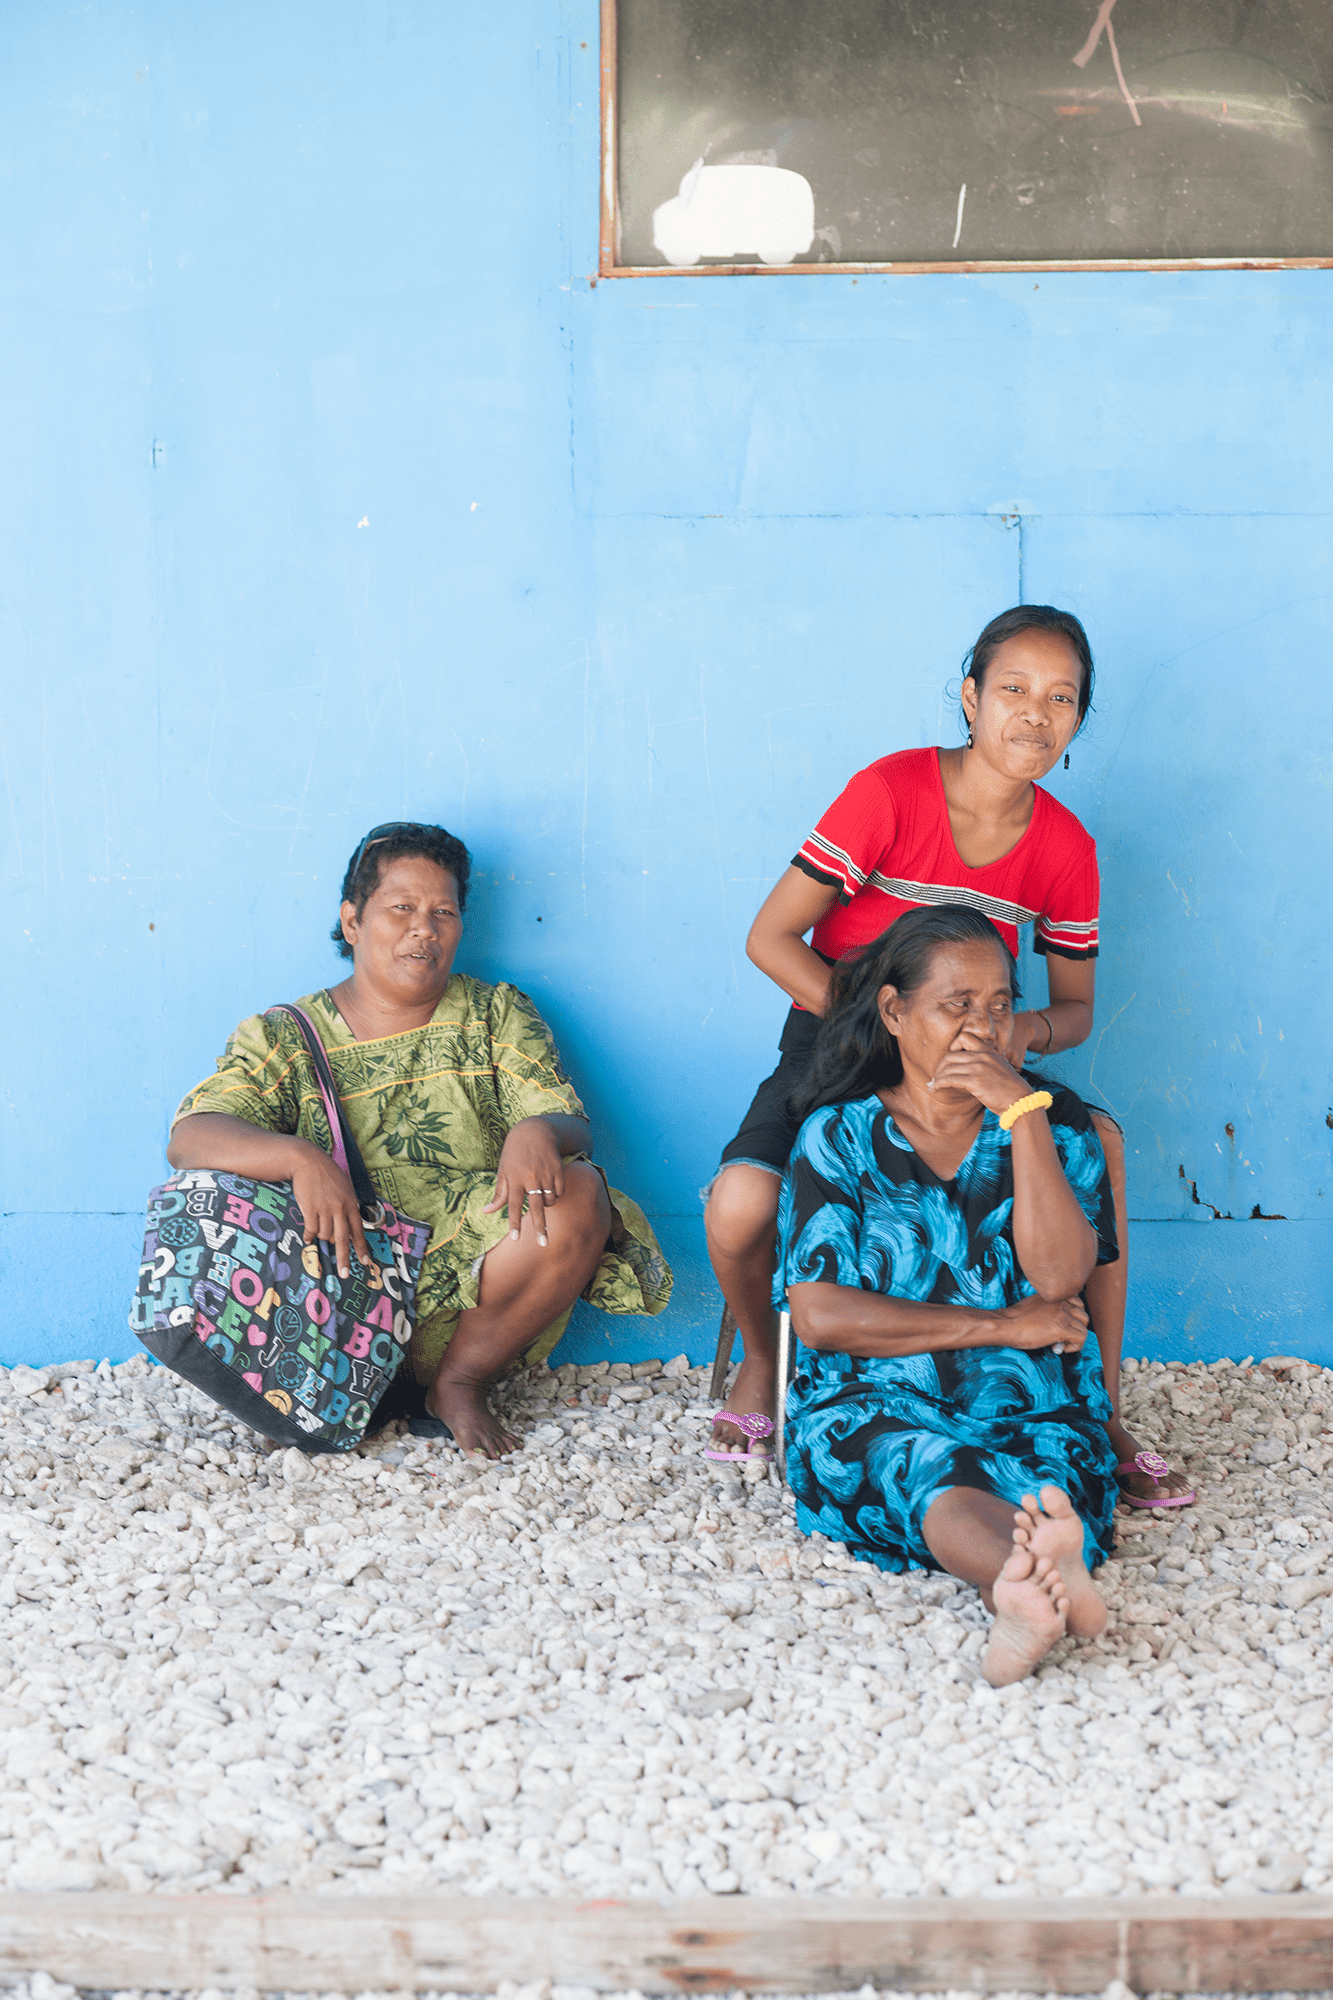 <p>Colorful walls abound on the islands, and long, floral-print dresses are common attire that many Micronesians bring with them when they relocate to the U.S..</p>